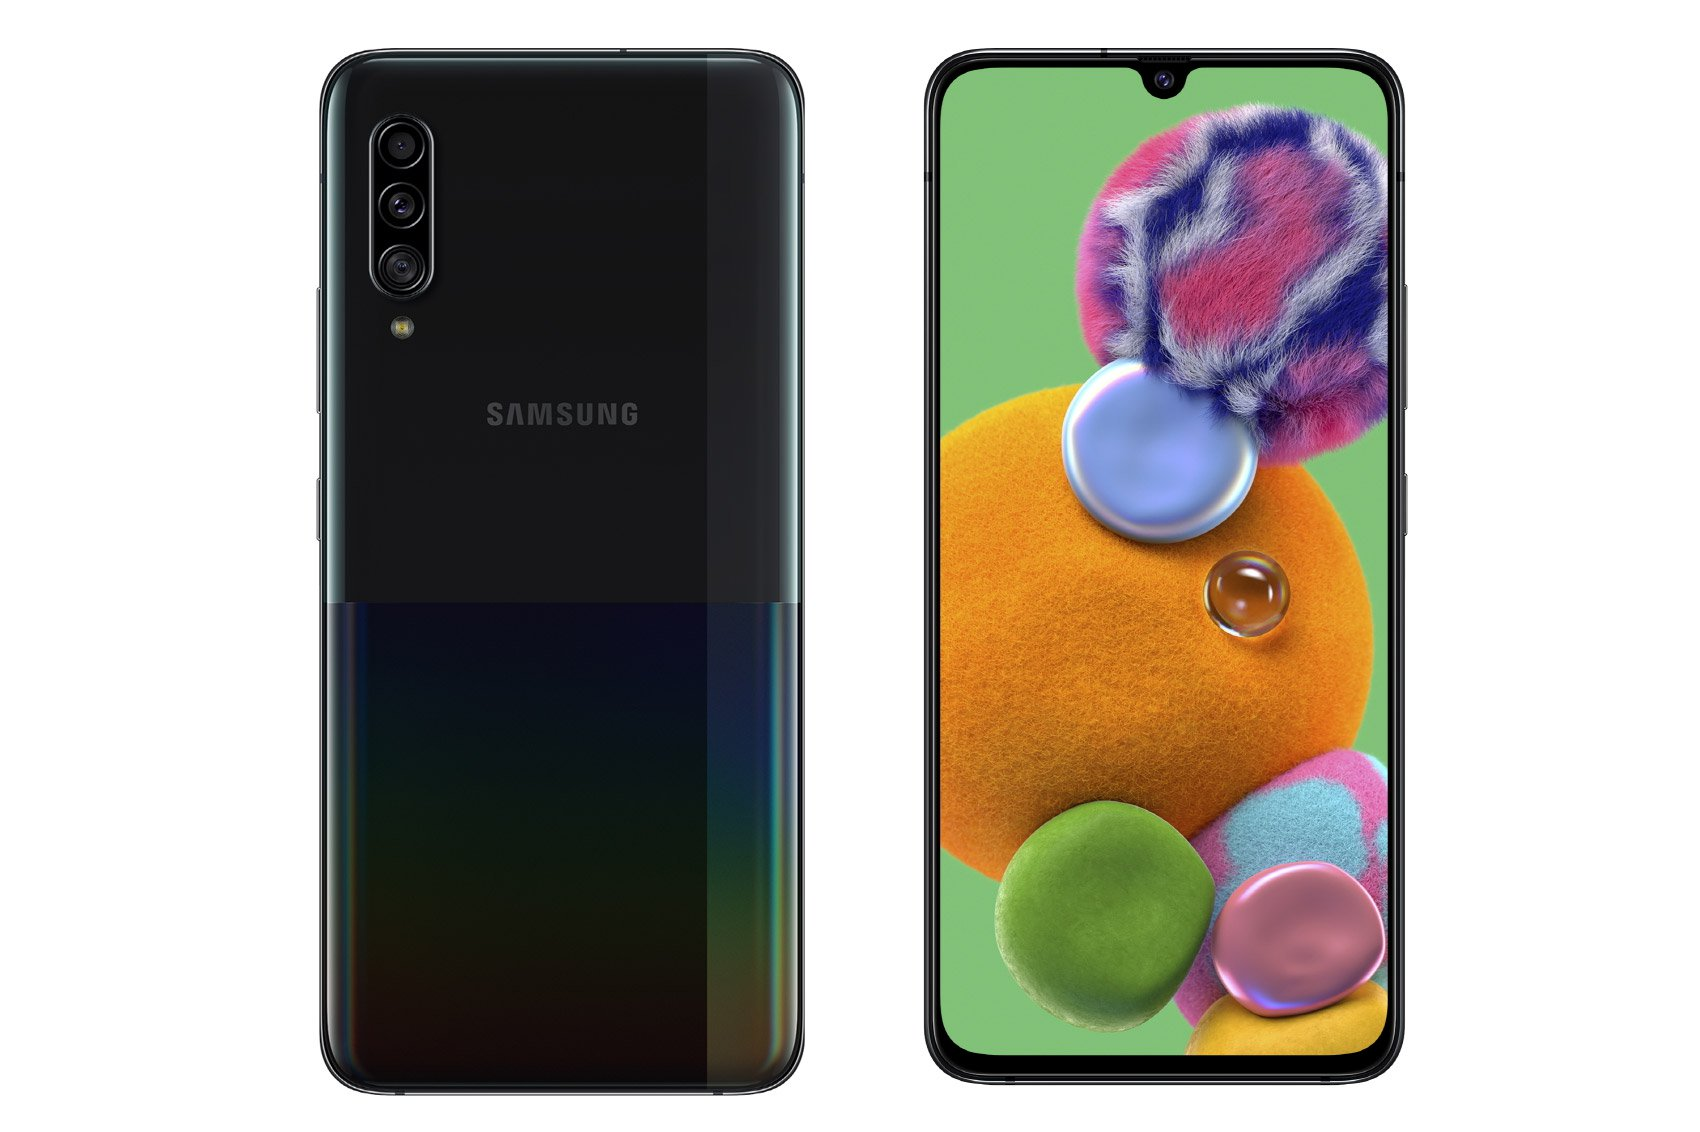 IFA 19: Samsung Galaxy A90 5G outperforms Galaxy S10 5G in quality-price? 3